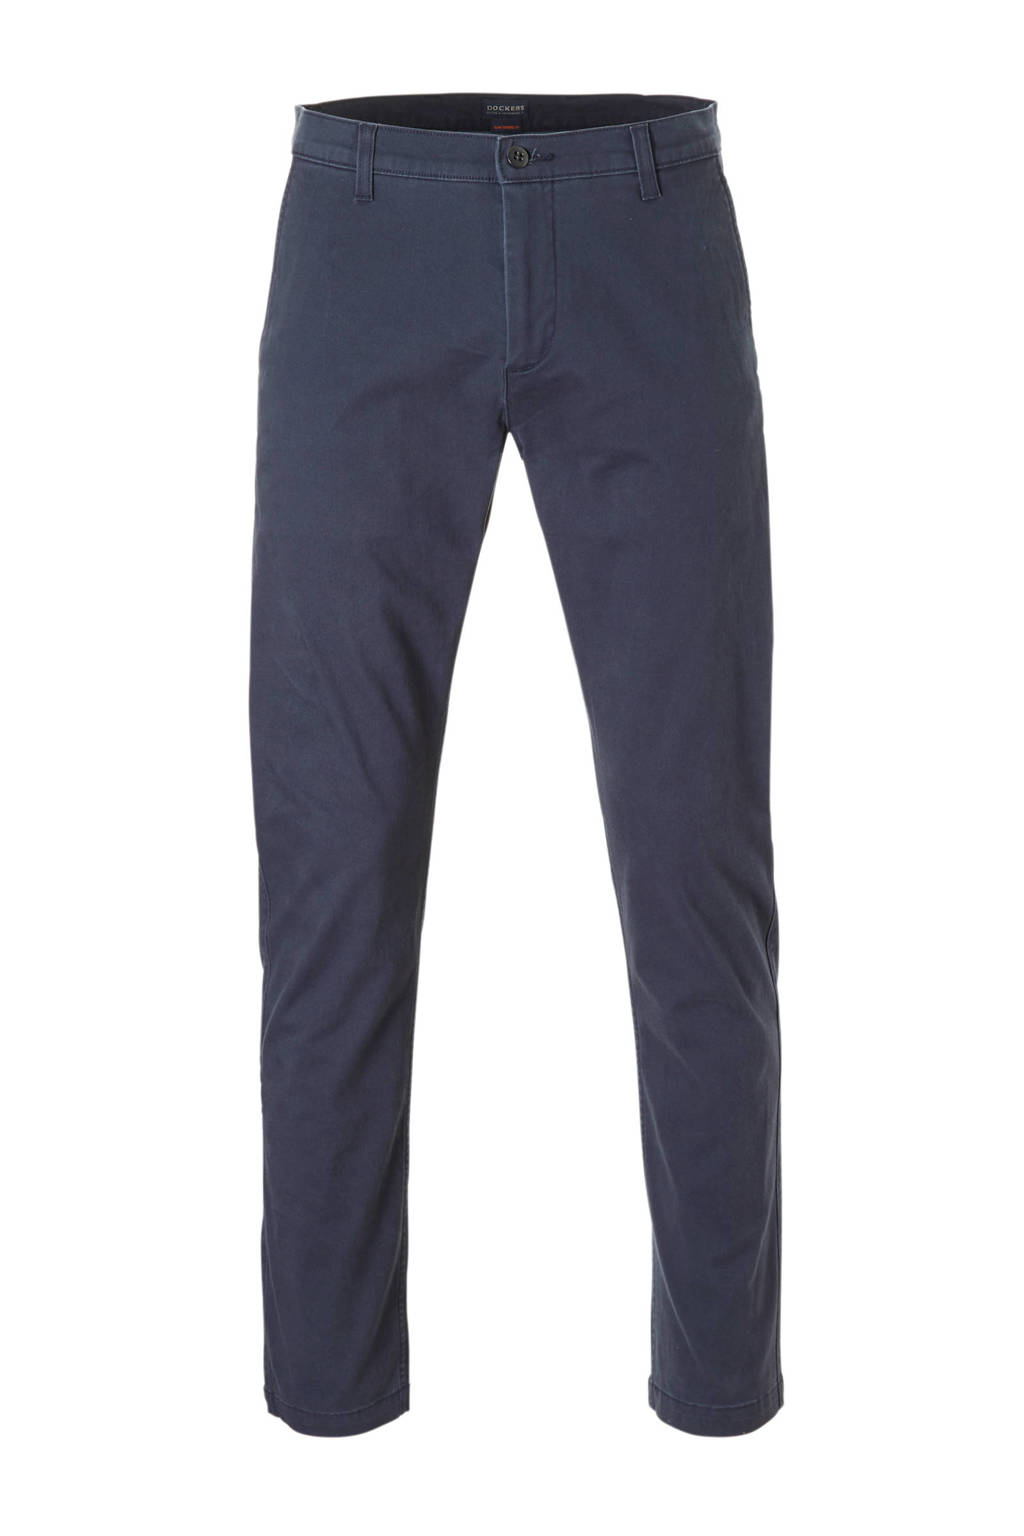 Dockers slim tapered fit chino, Pembroke